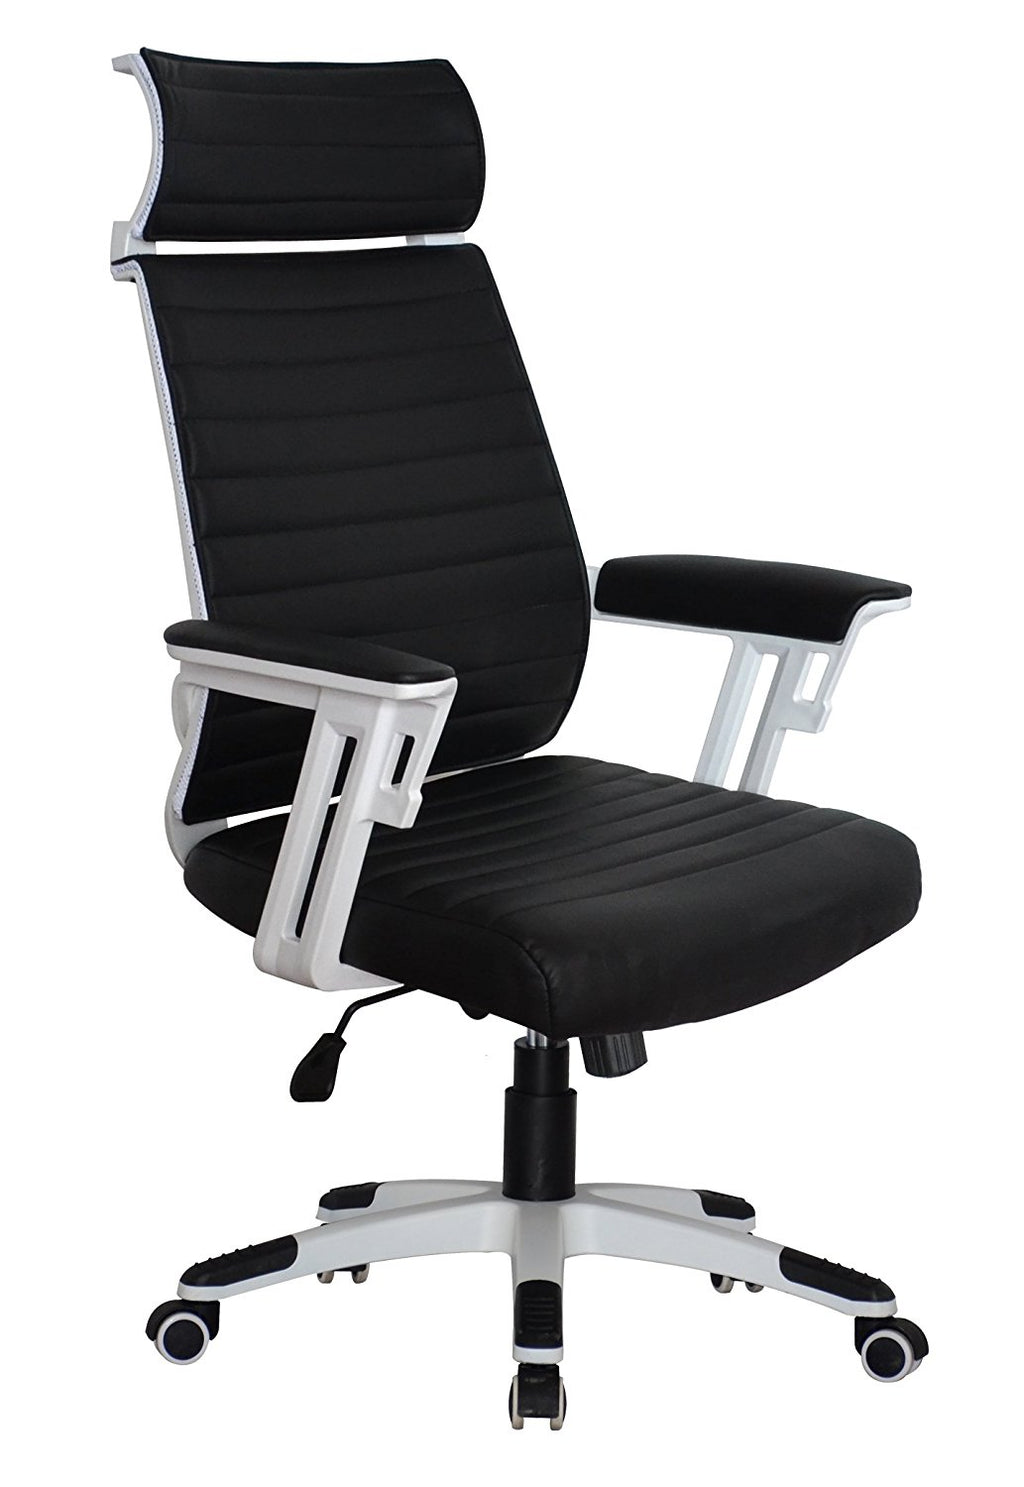 Executive Contemporary Office Chair with attached headrest - Black vegan leather - Ergonomic comfort cushion - US Office Elements